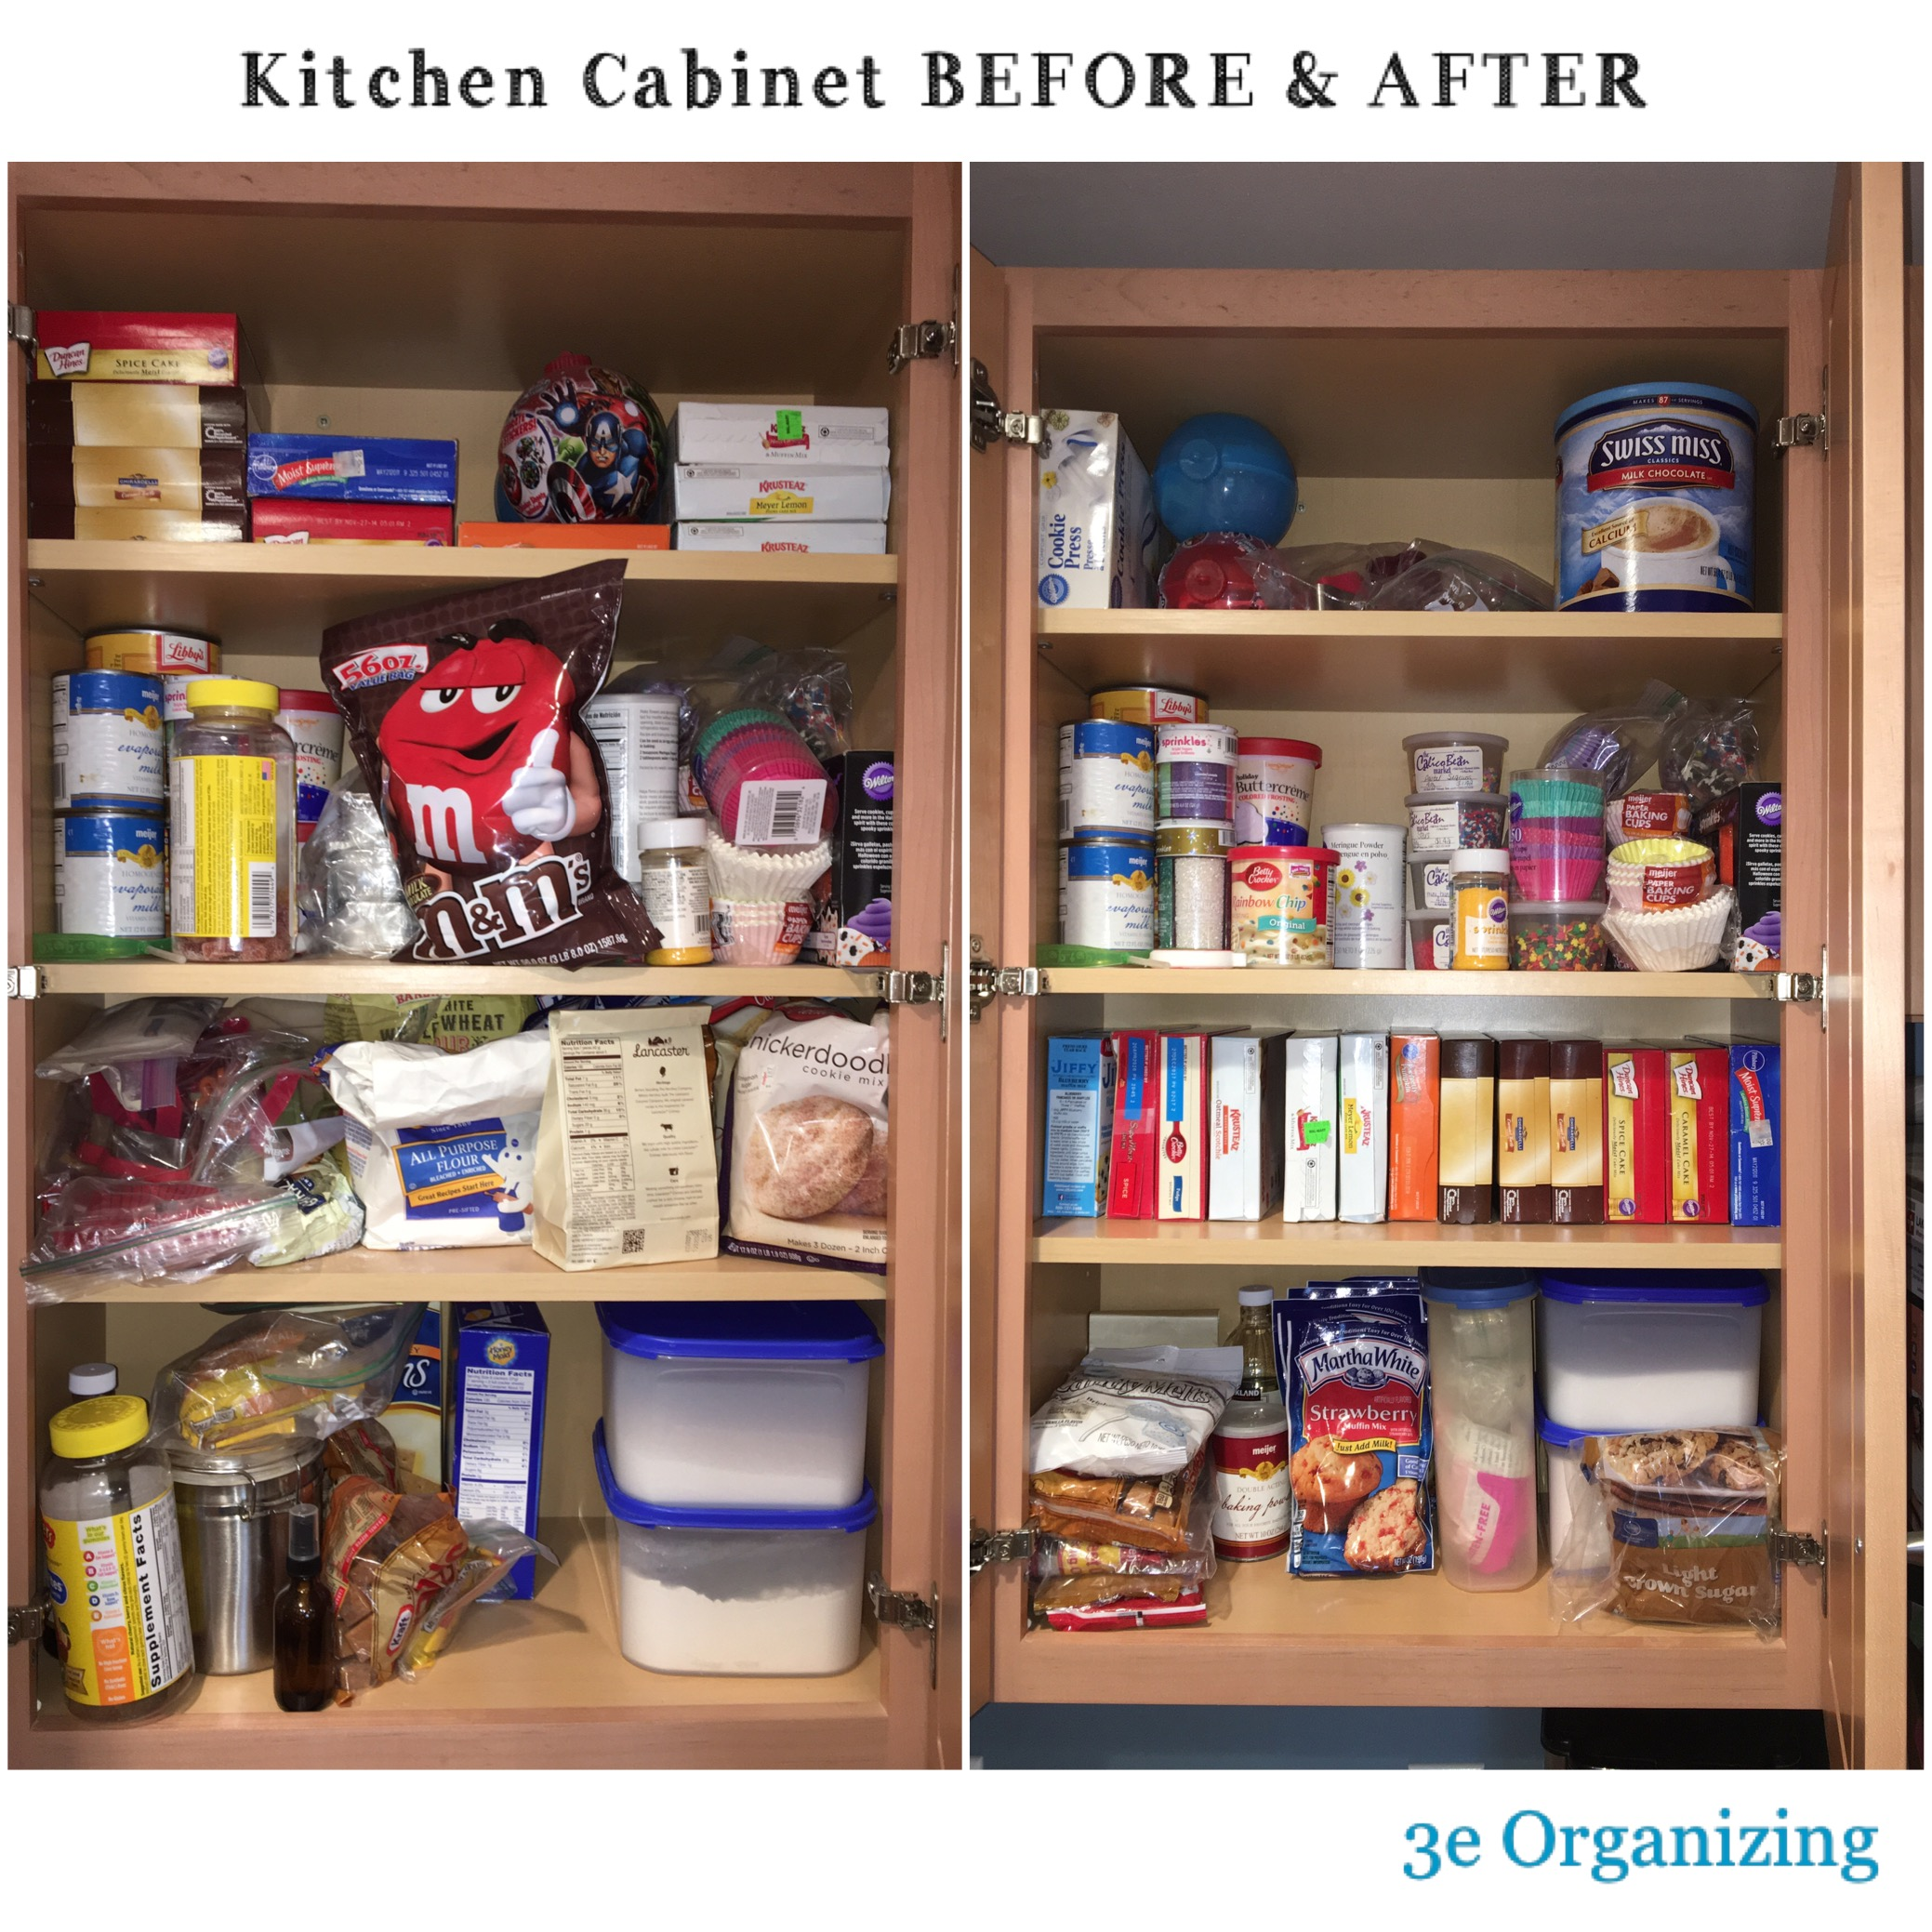 Organized Kitchen Before And After: 3e Organizing, Lindsay Palmgren, Before And After Photos